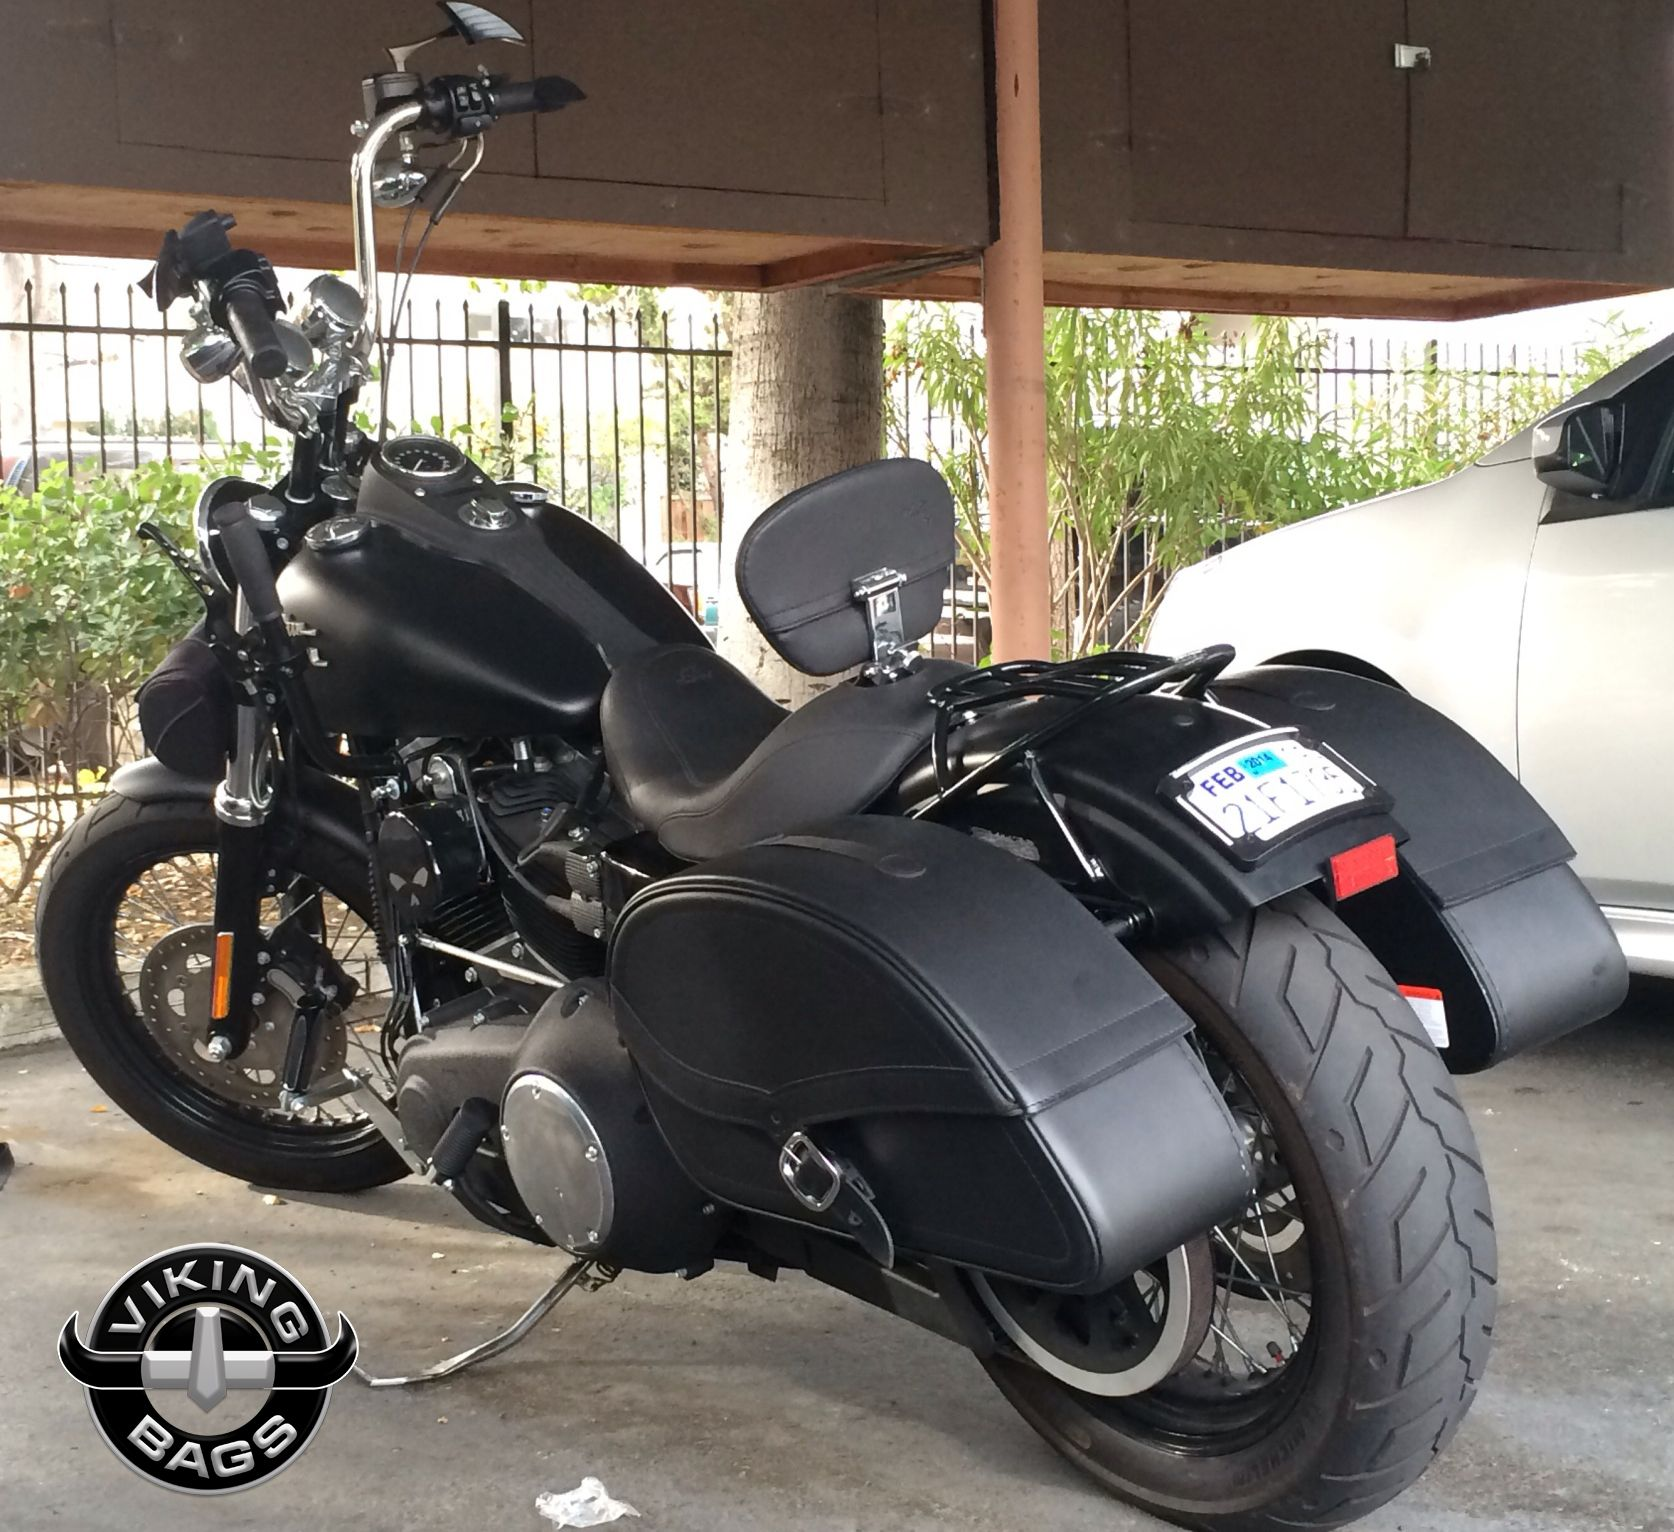 Check out Gabe's #Harley #Dyna Street Bob rocking a pair of